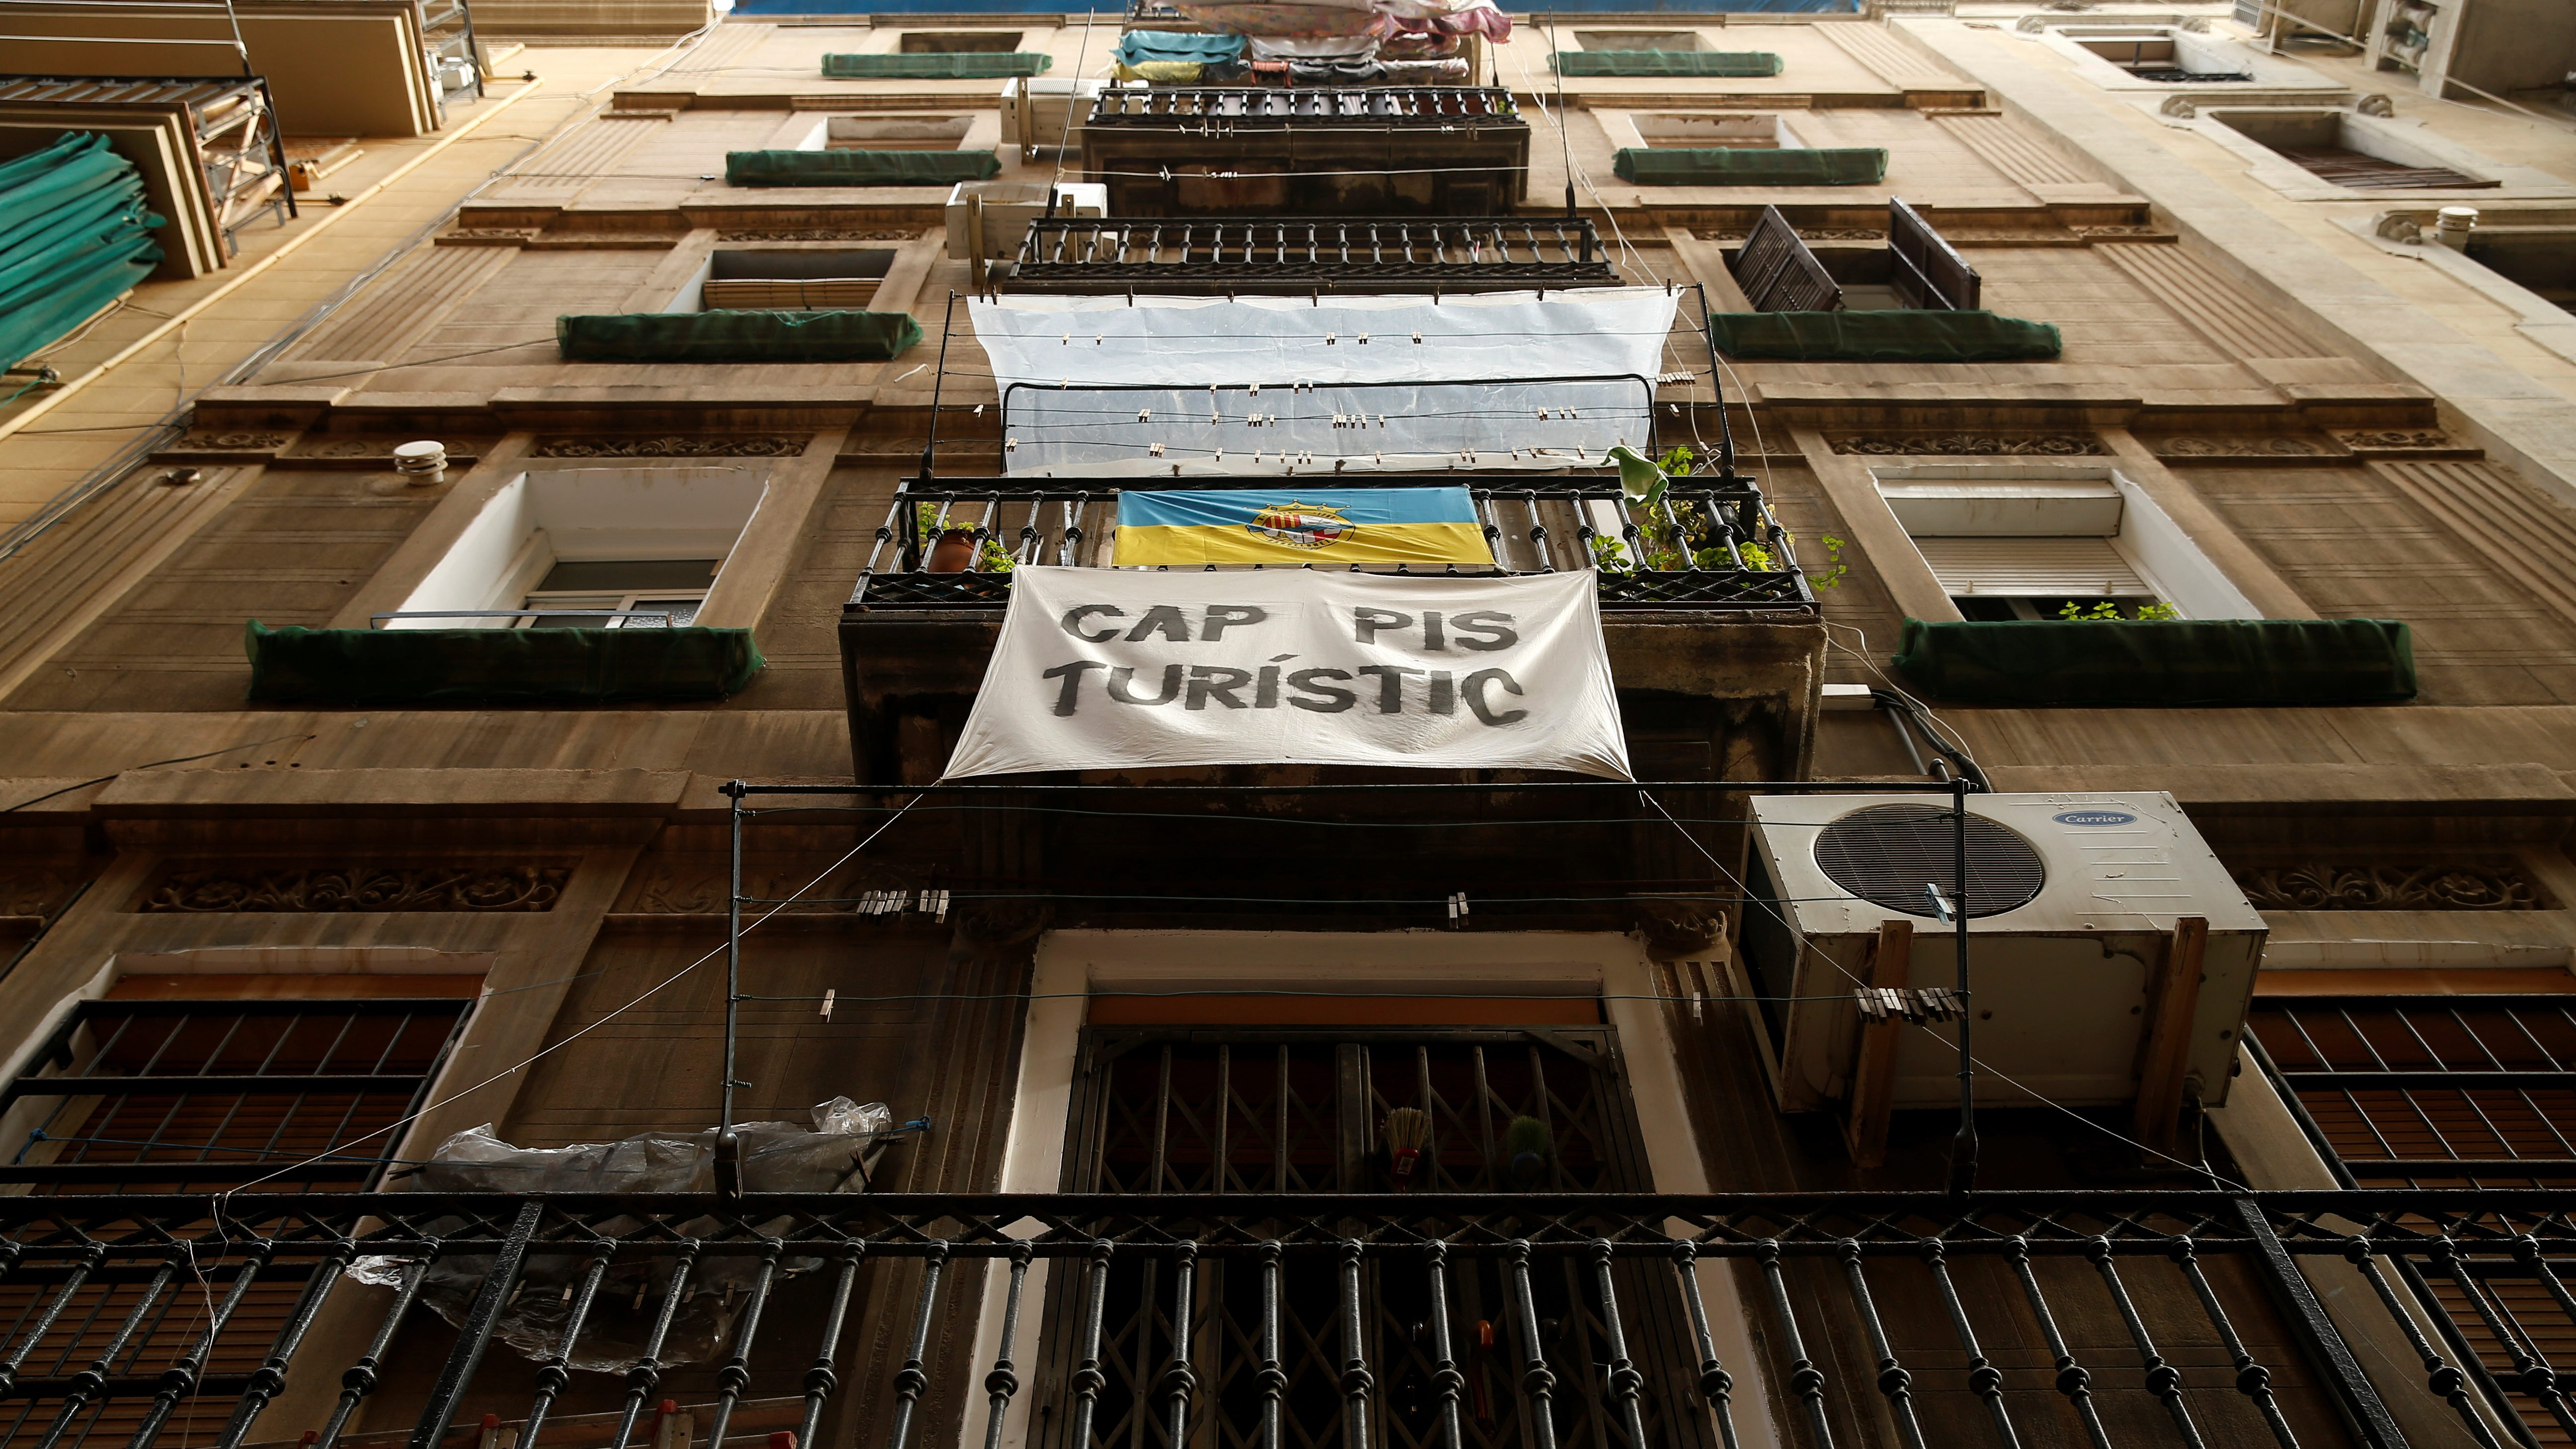 """A banner against apartments for tourists hangs from a balcony at Barceloneta neighborhood in Barcelona, Spain, November 28, 2016. The banner reads """"No tourists apartments"""". REUTERS/Albert Gea - RTSTNUA"""